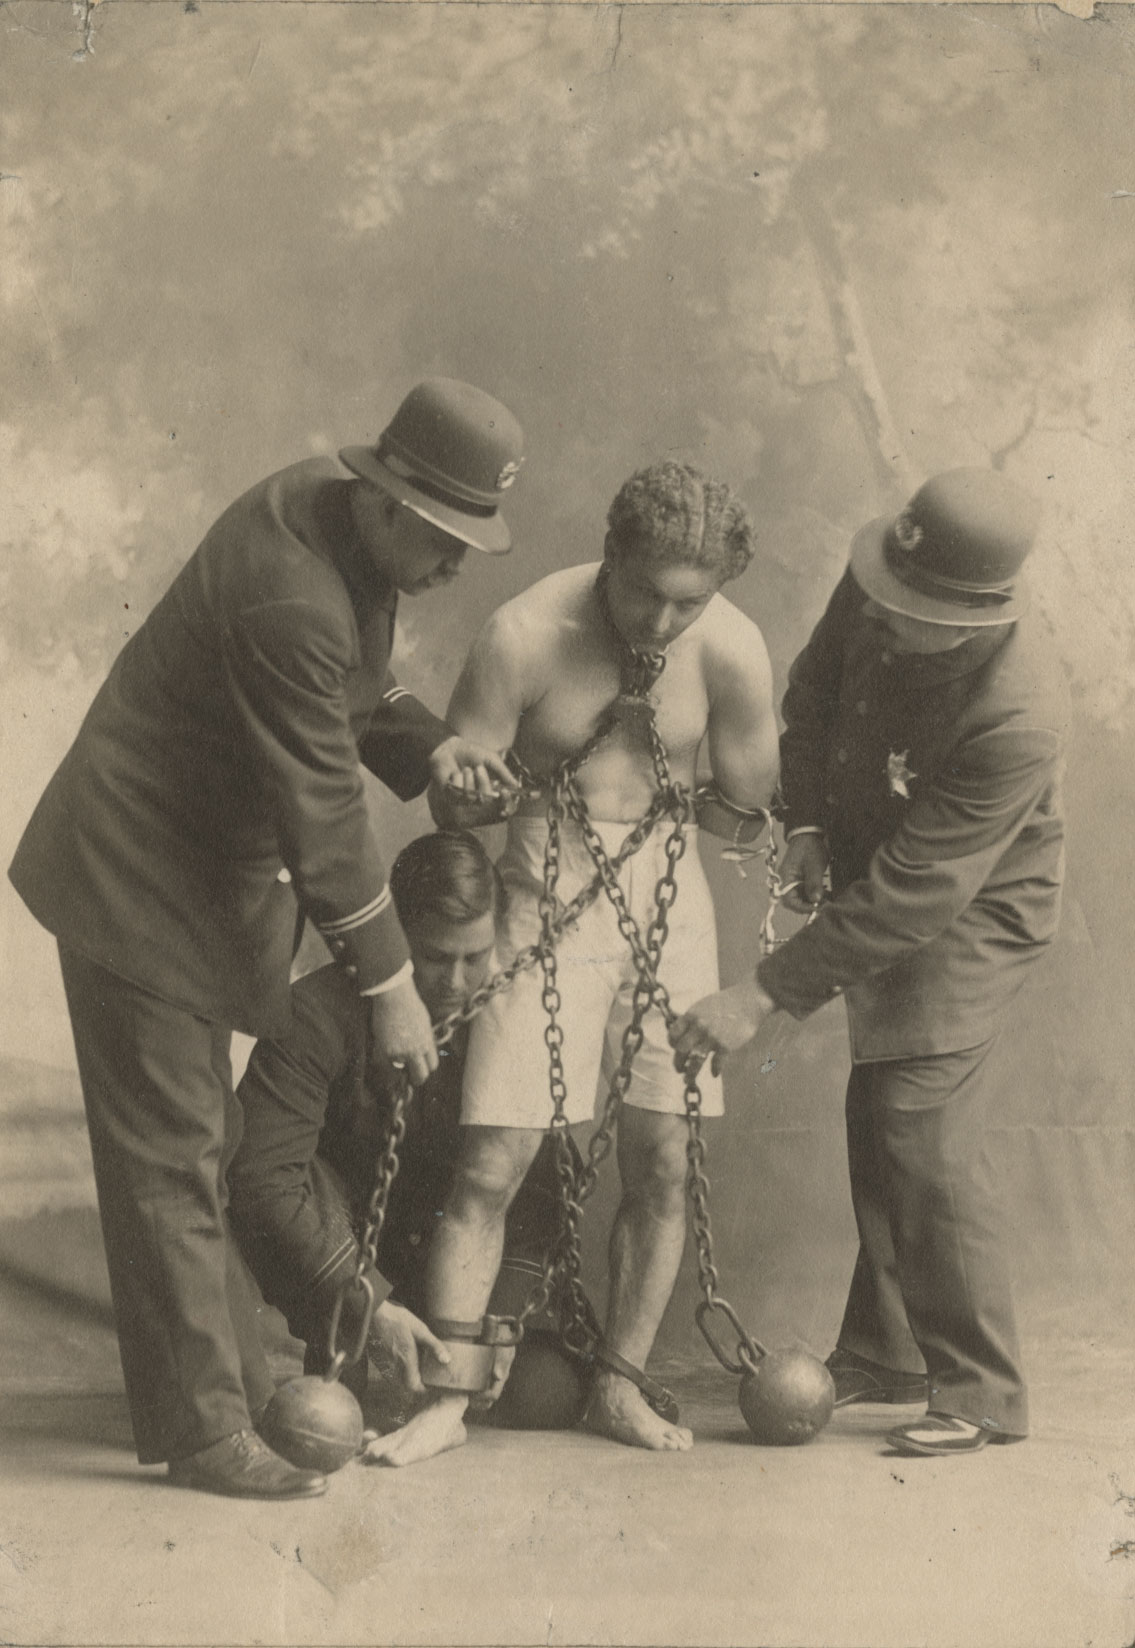 Unidentified photographer, [Harry Houdini in chains and ball weights with police], ca. 1900. Gelatin silver print, 14 x 9.5 cm.